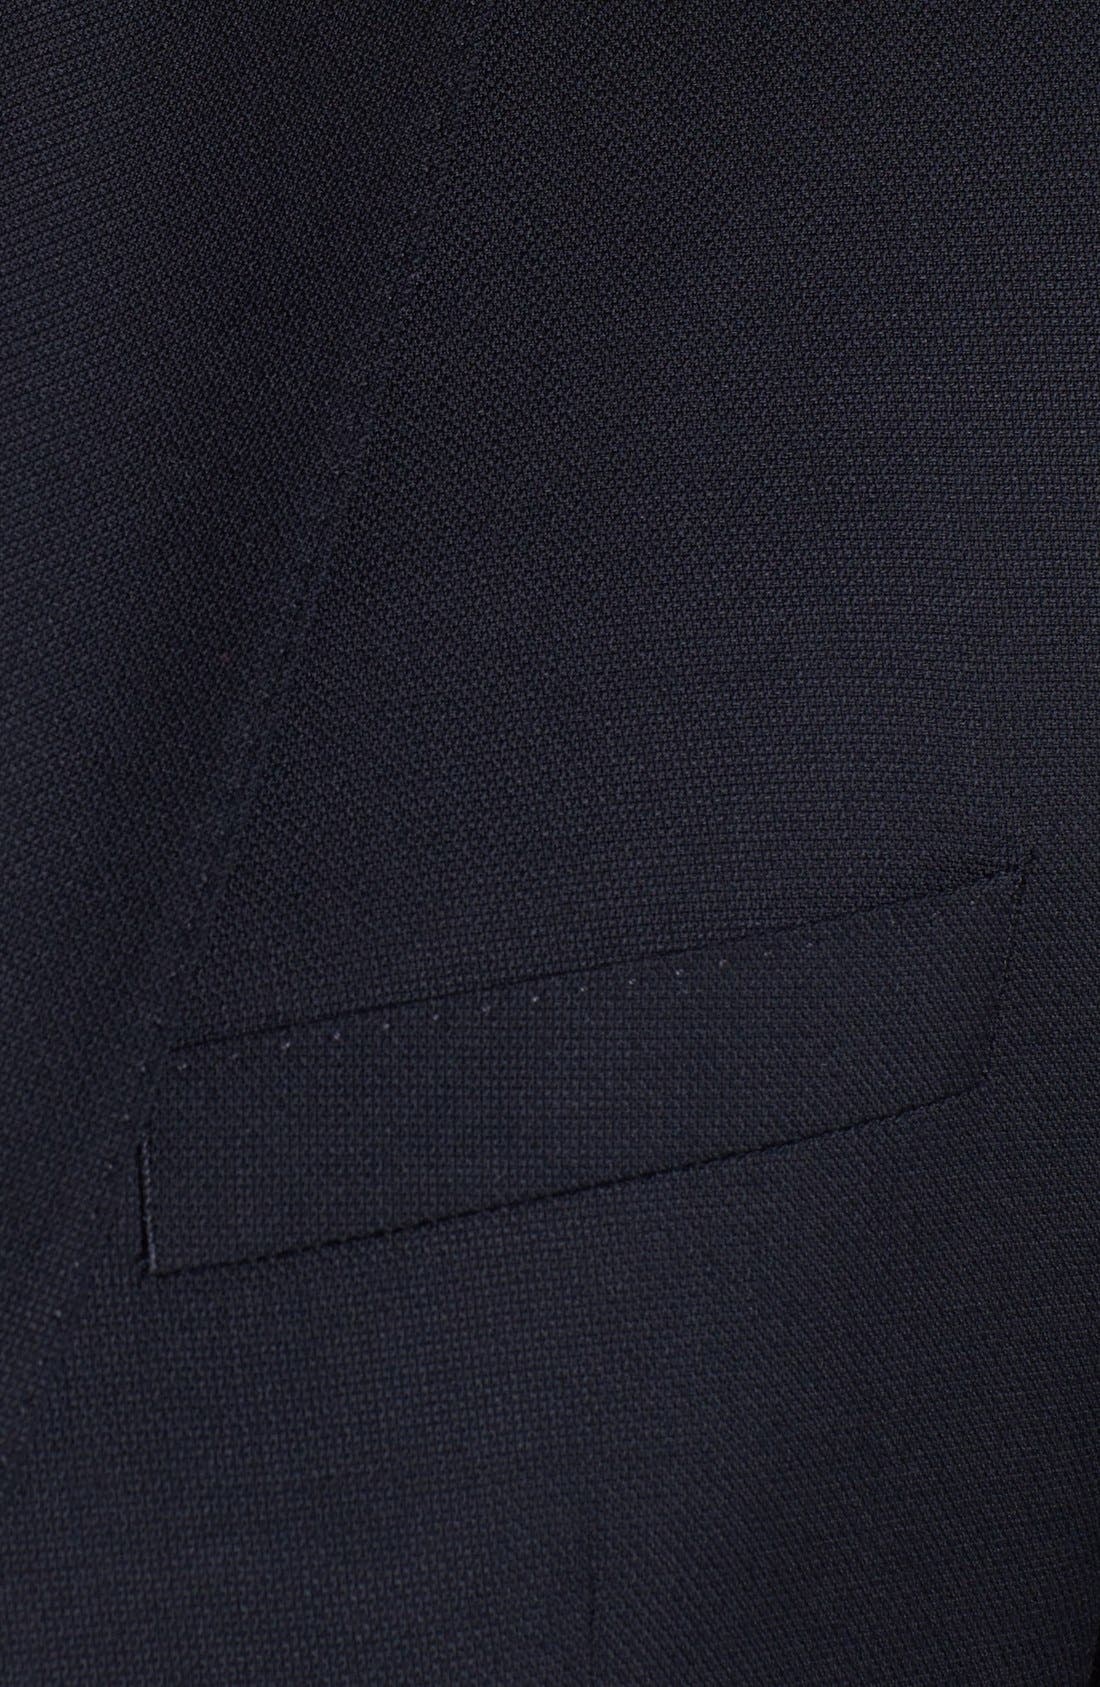 Alternate Image 3  - BOSS HUGO BOSS 'The Sweet' Trim Fit Blazer